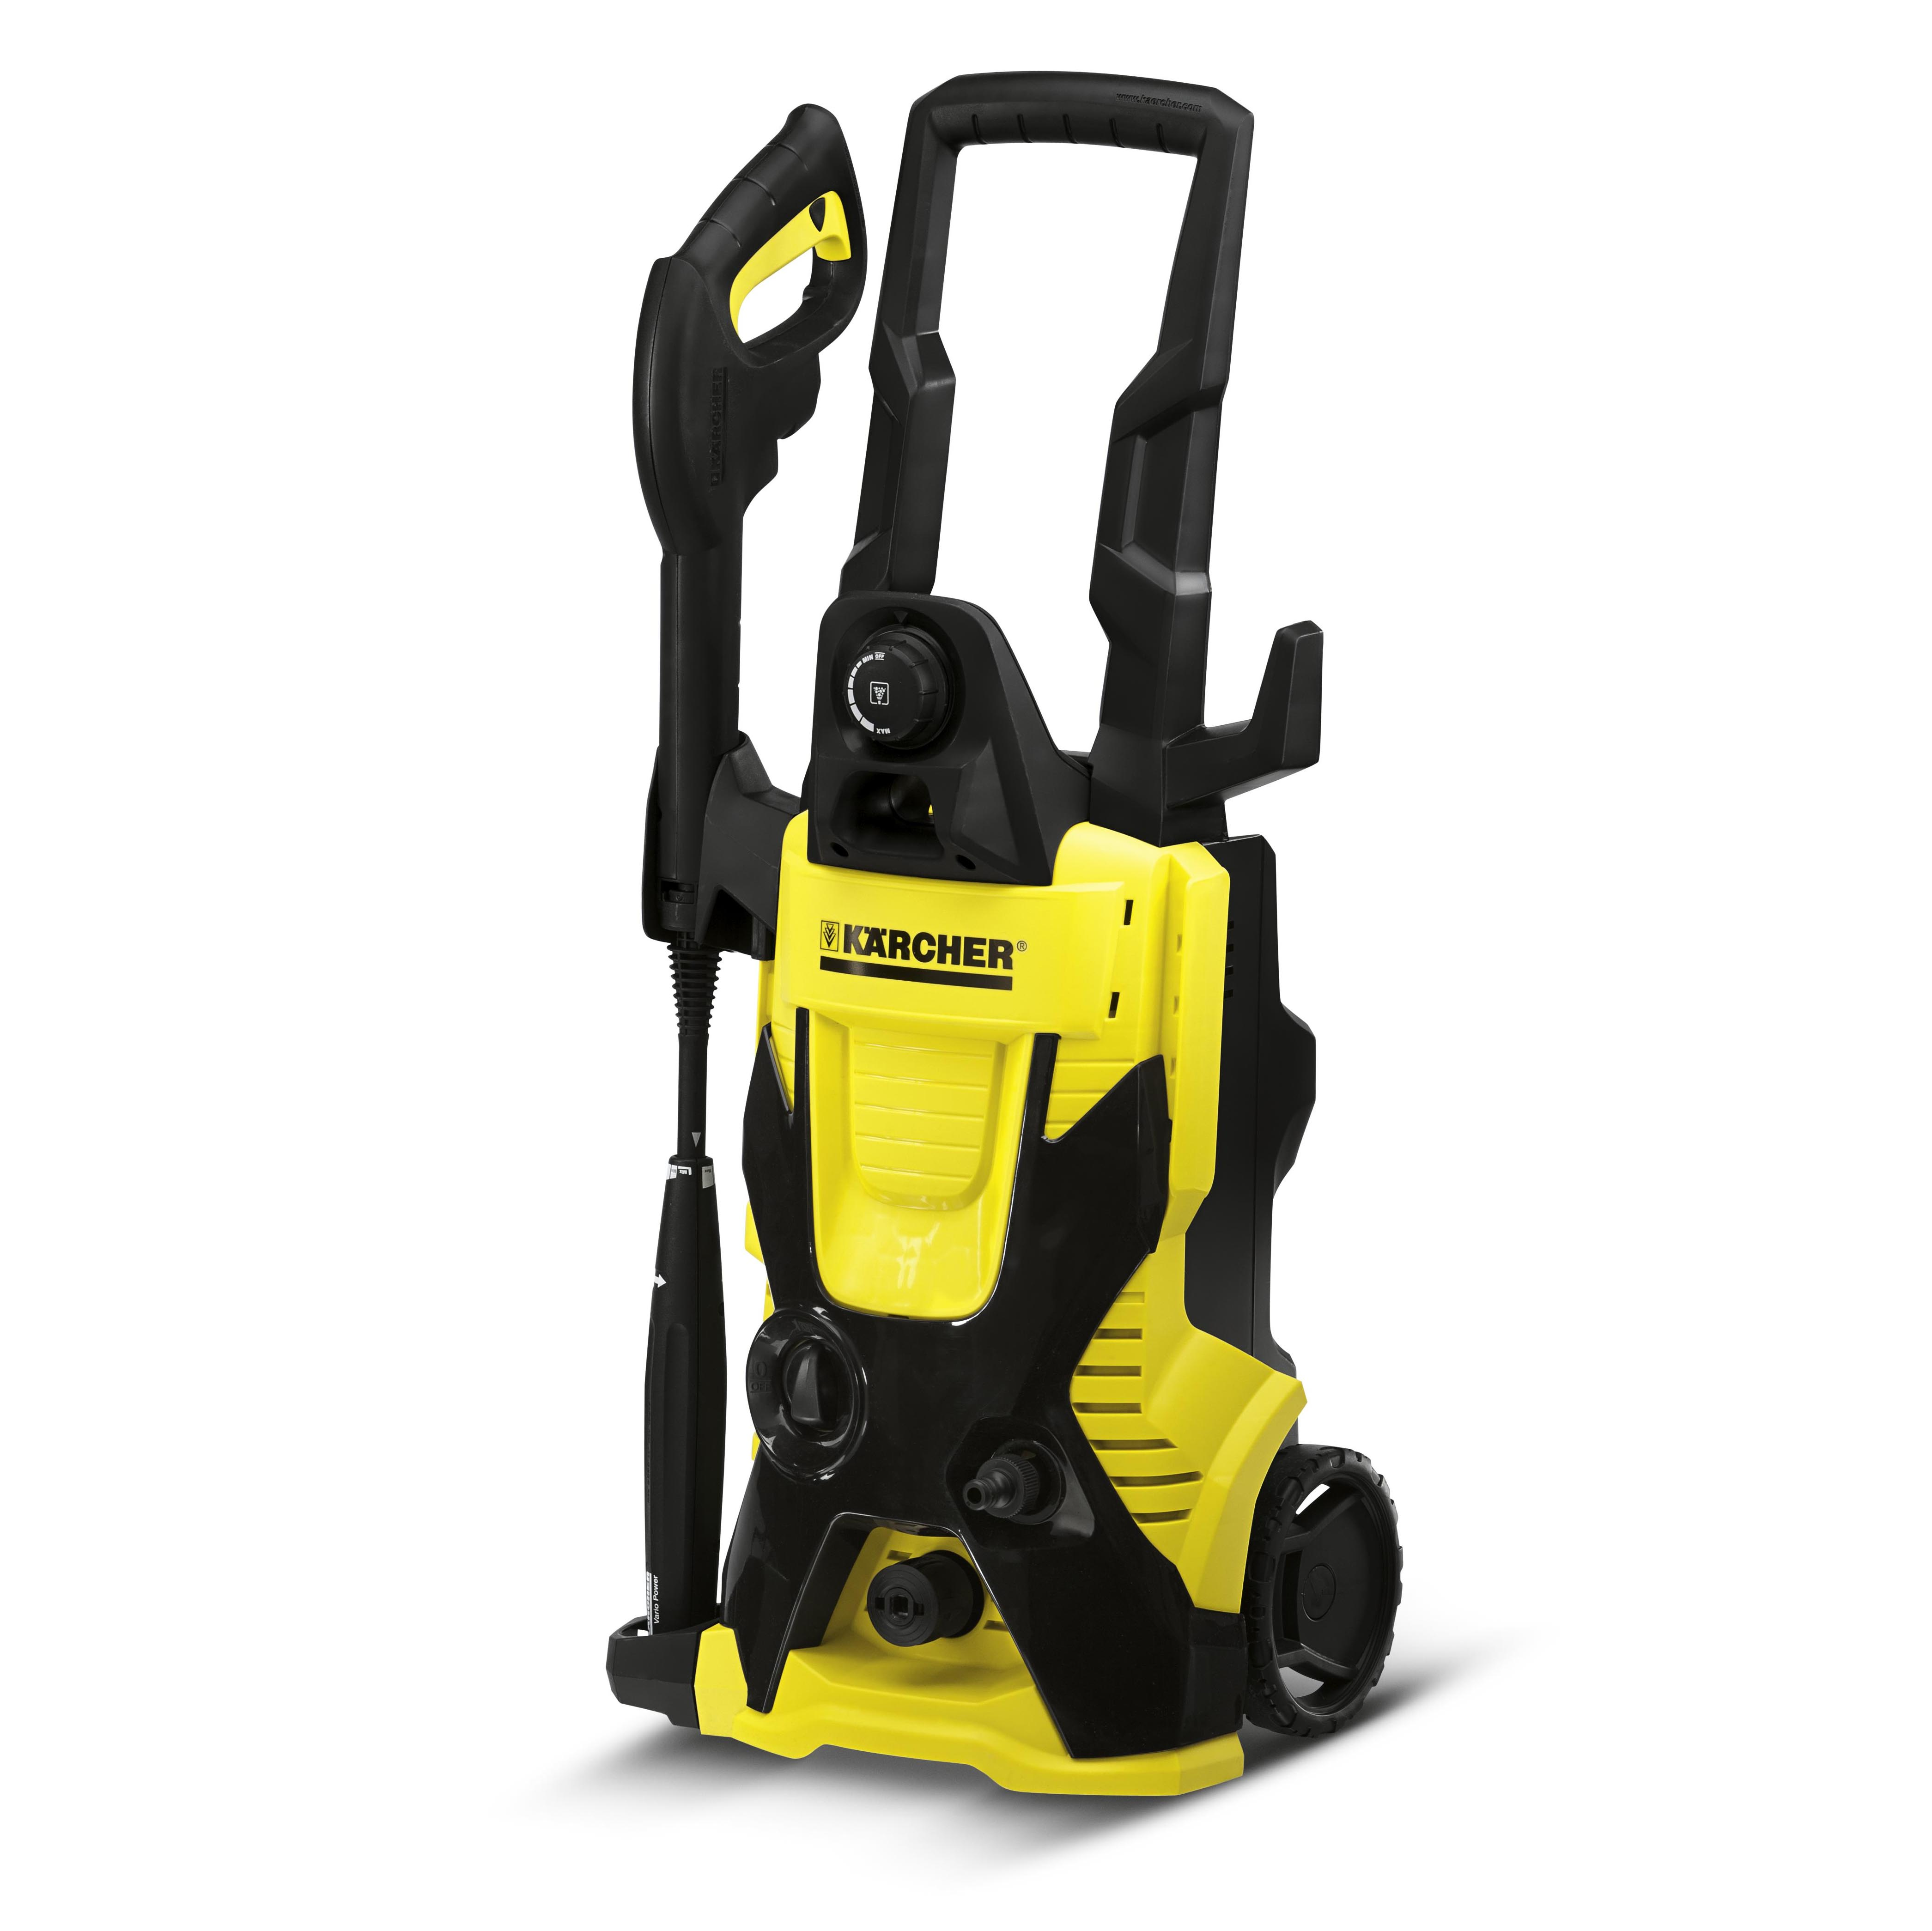 Karcher 1800 psi 1 5 gpm cold water electric - Karcher k3 home ...